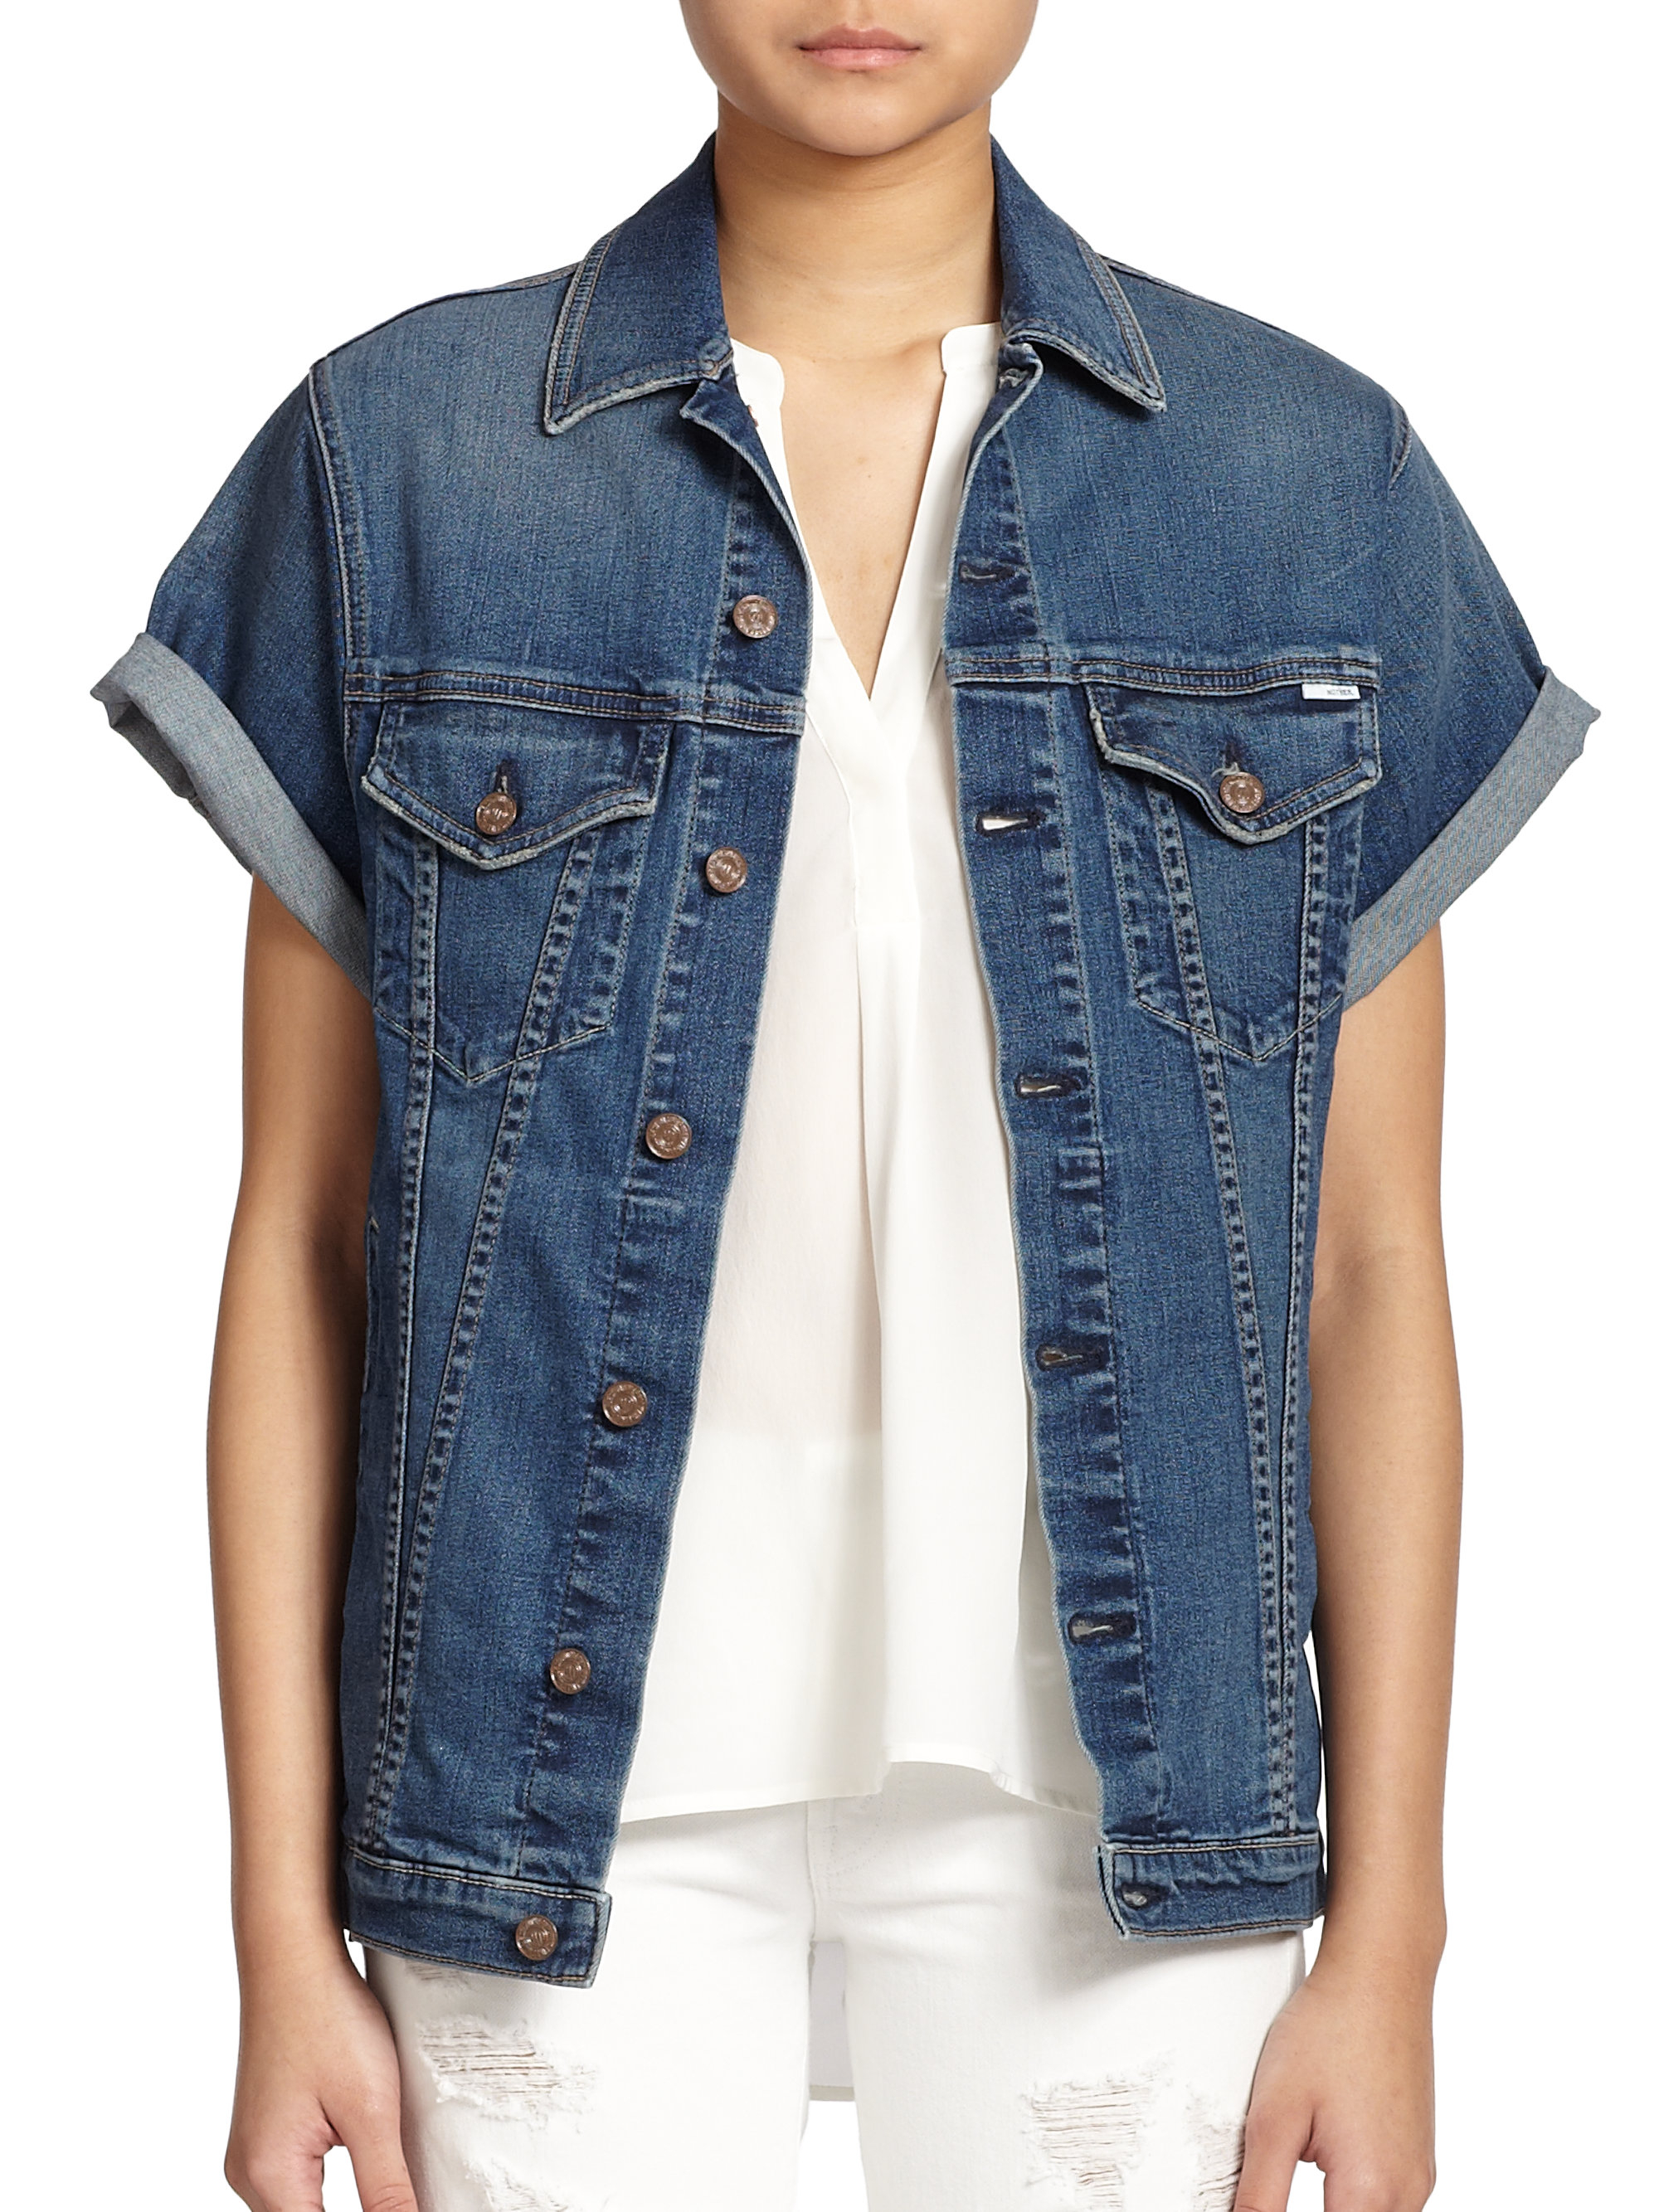 Mother Cronie Short-Sleeve Denim Jacket in Blue | Lyst